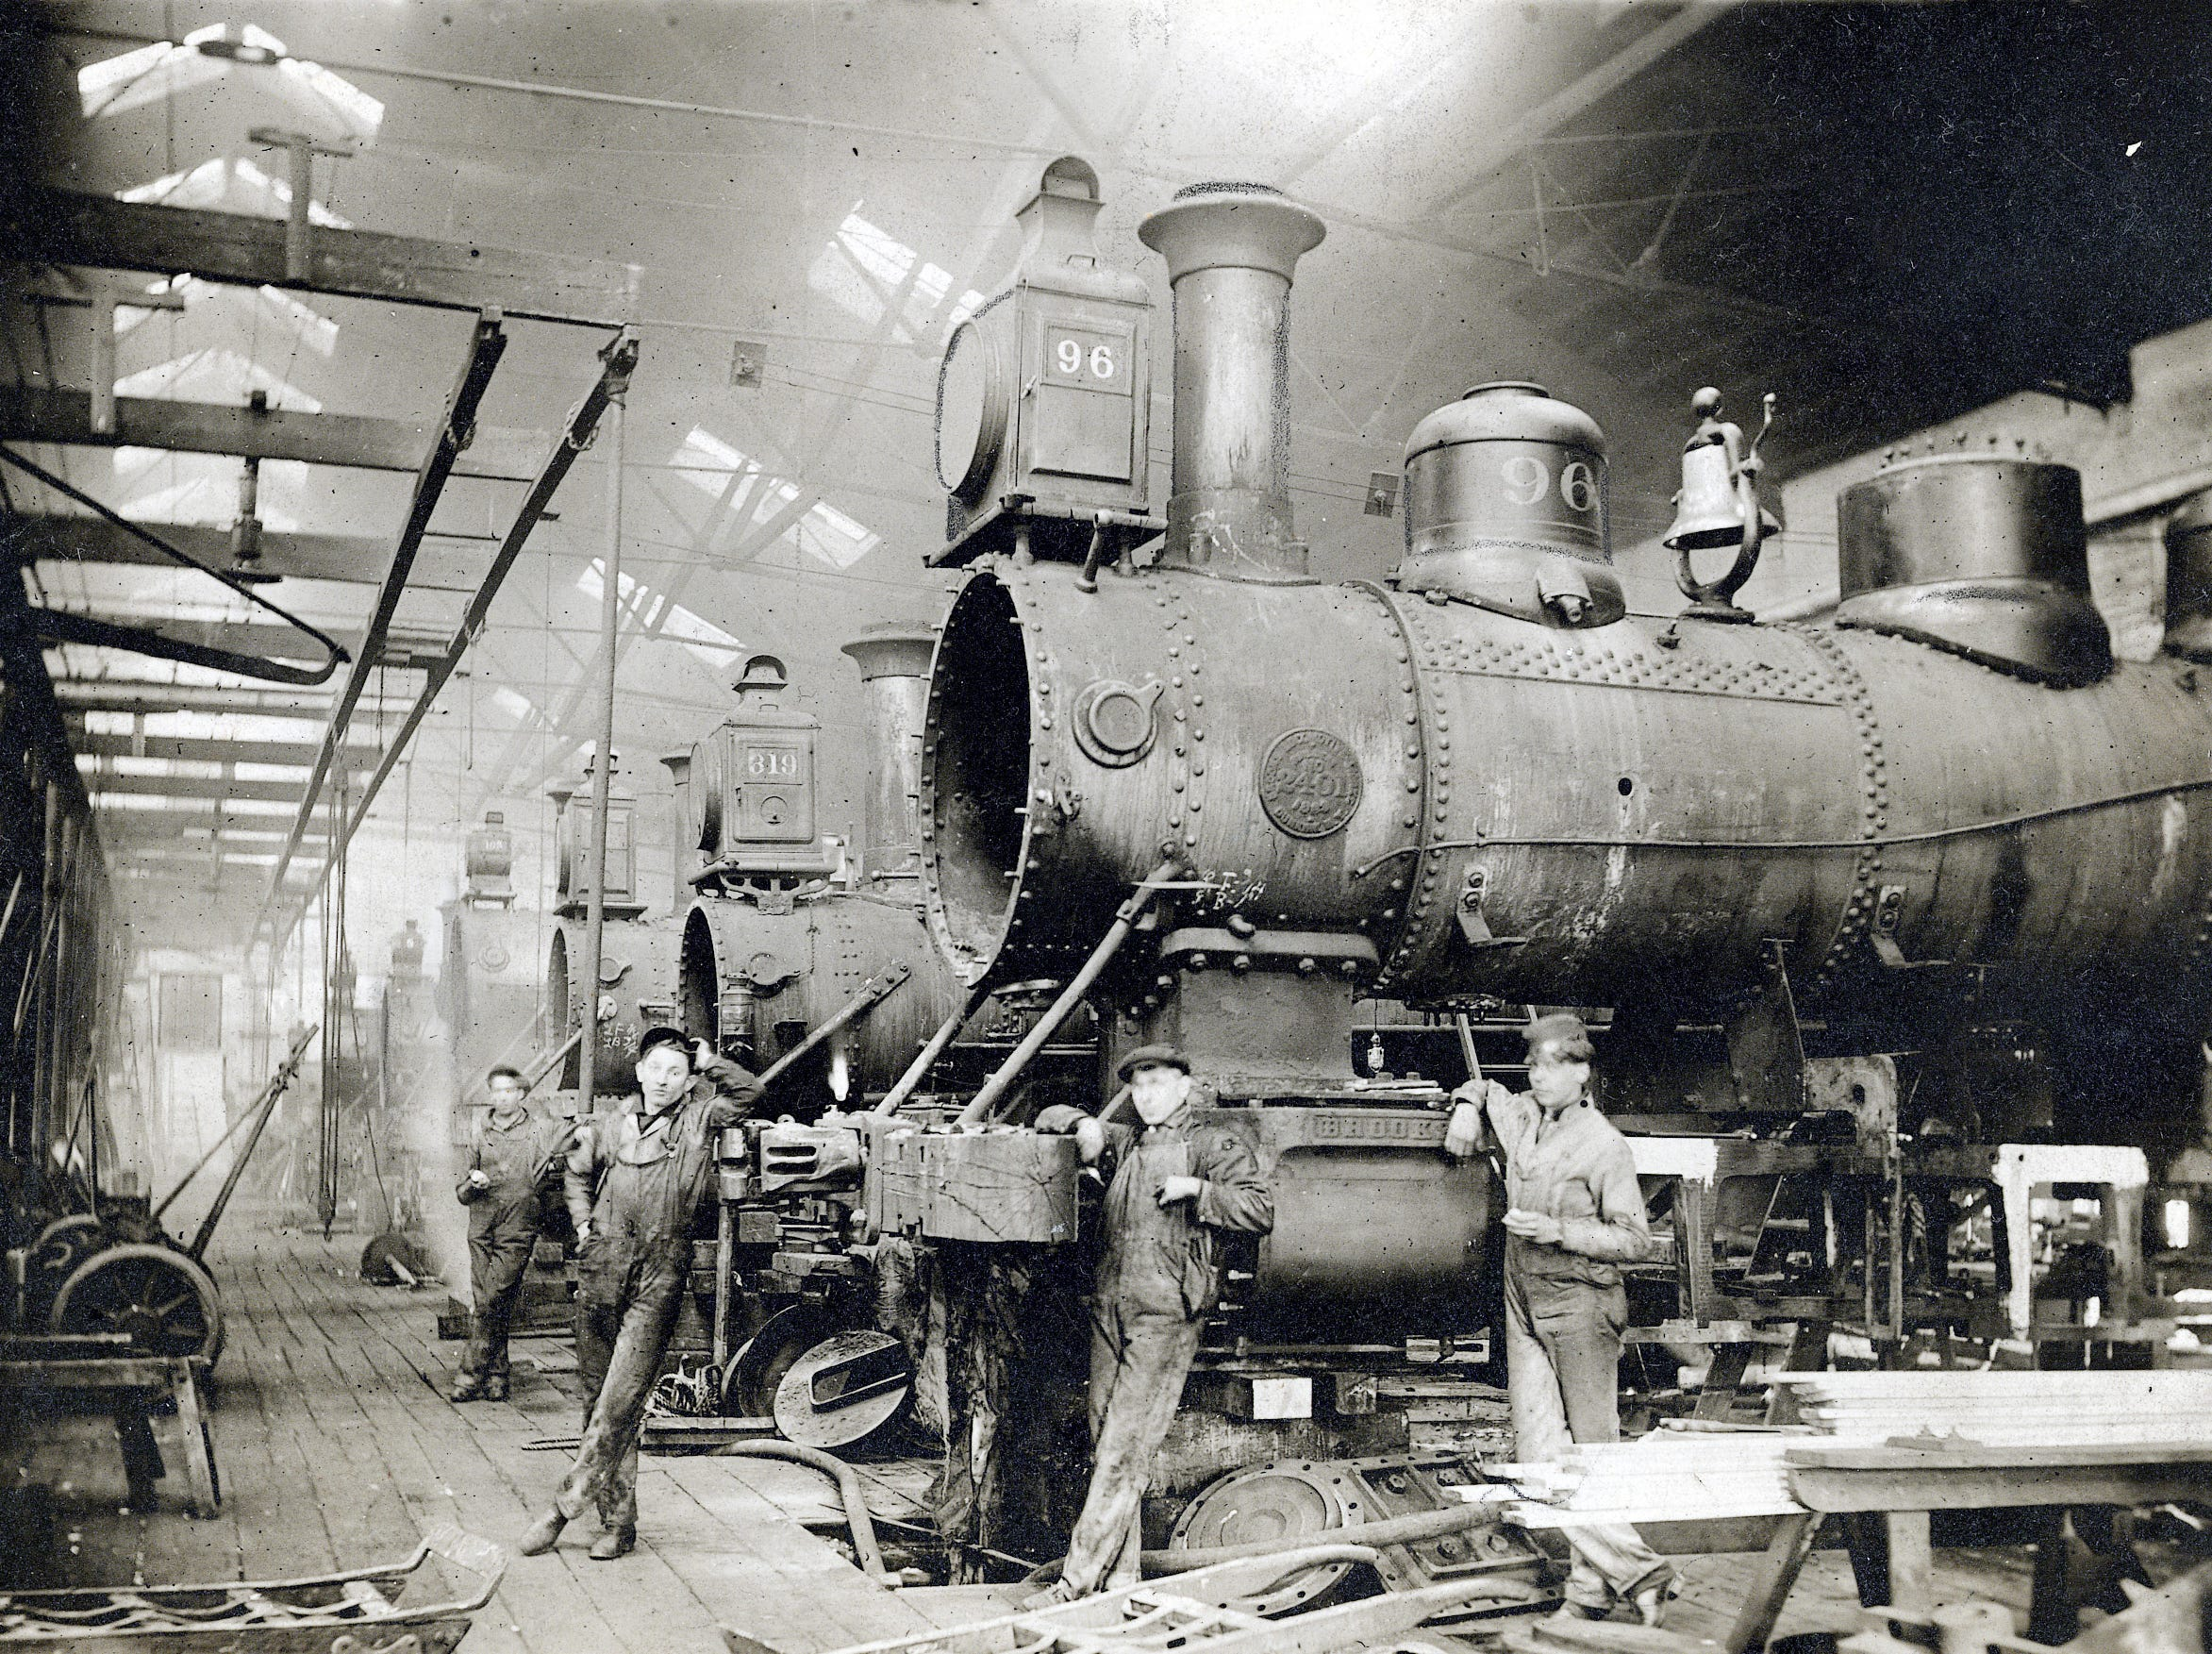 Massive engines were all in a dayÕs work at the Beech Grove train shops near the start of the century. The rail yard, which once employed about 5,000, began in 1908 as shops for the Cleveland, Cincinnati, Chicago & St. Louis Railway.